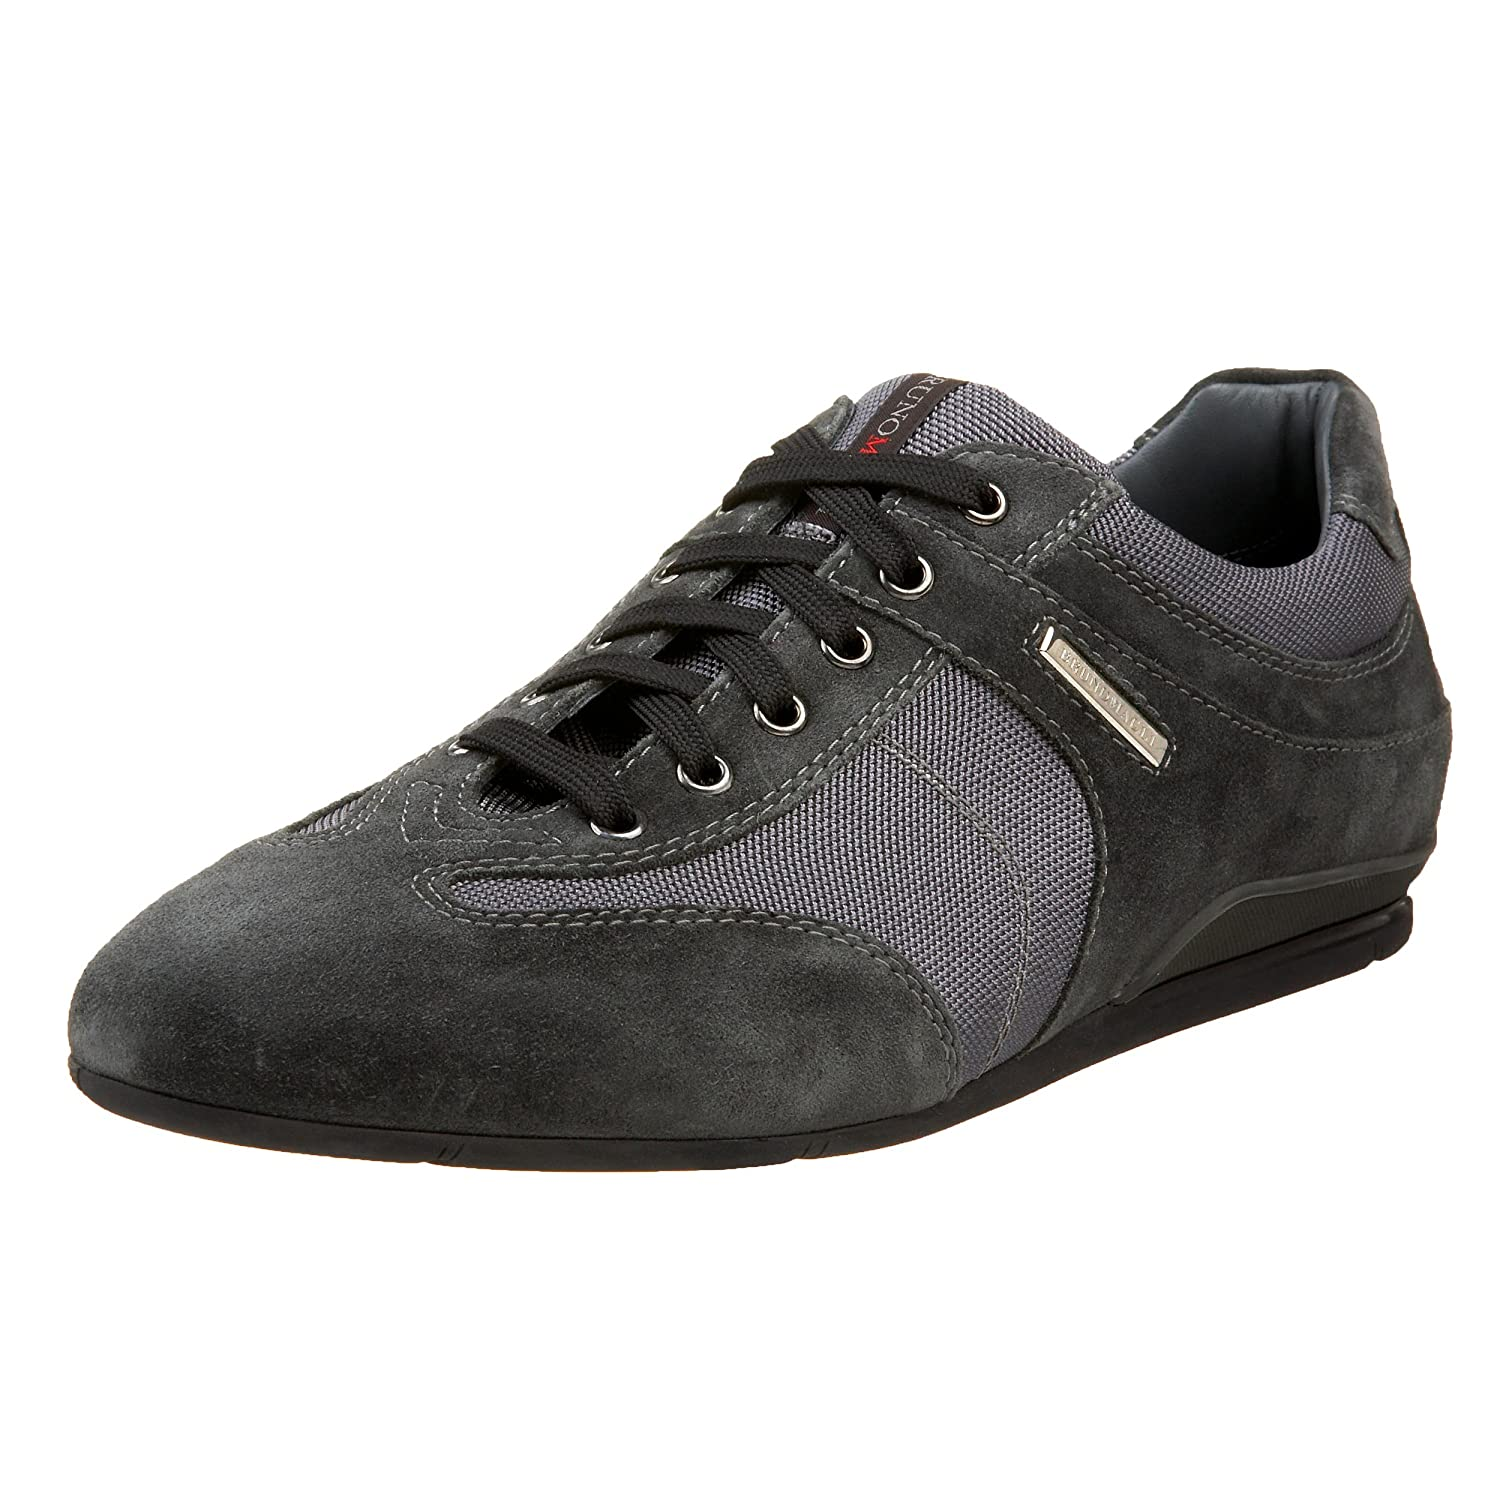 canvas sneaker bruno magli s donny sport shoe